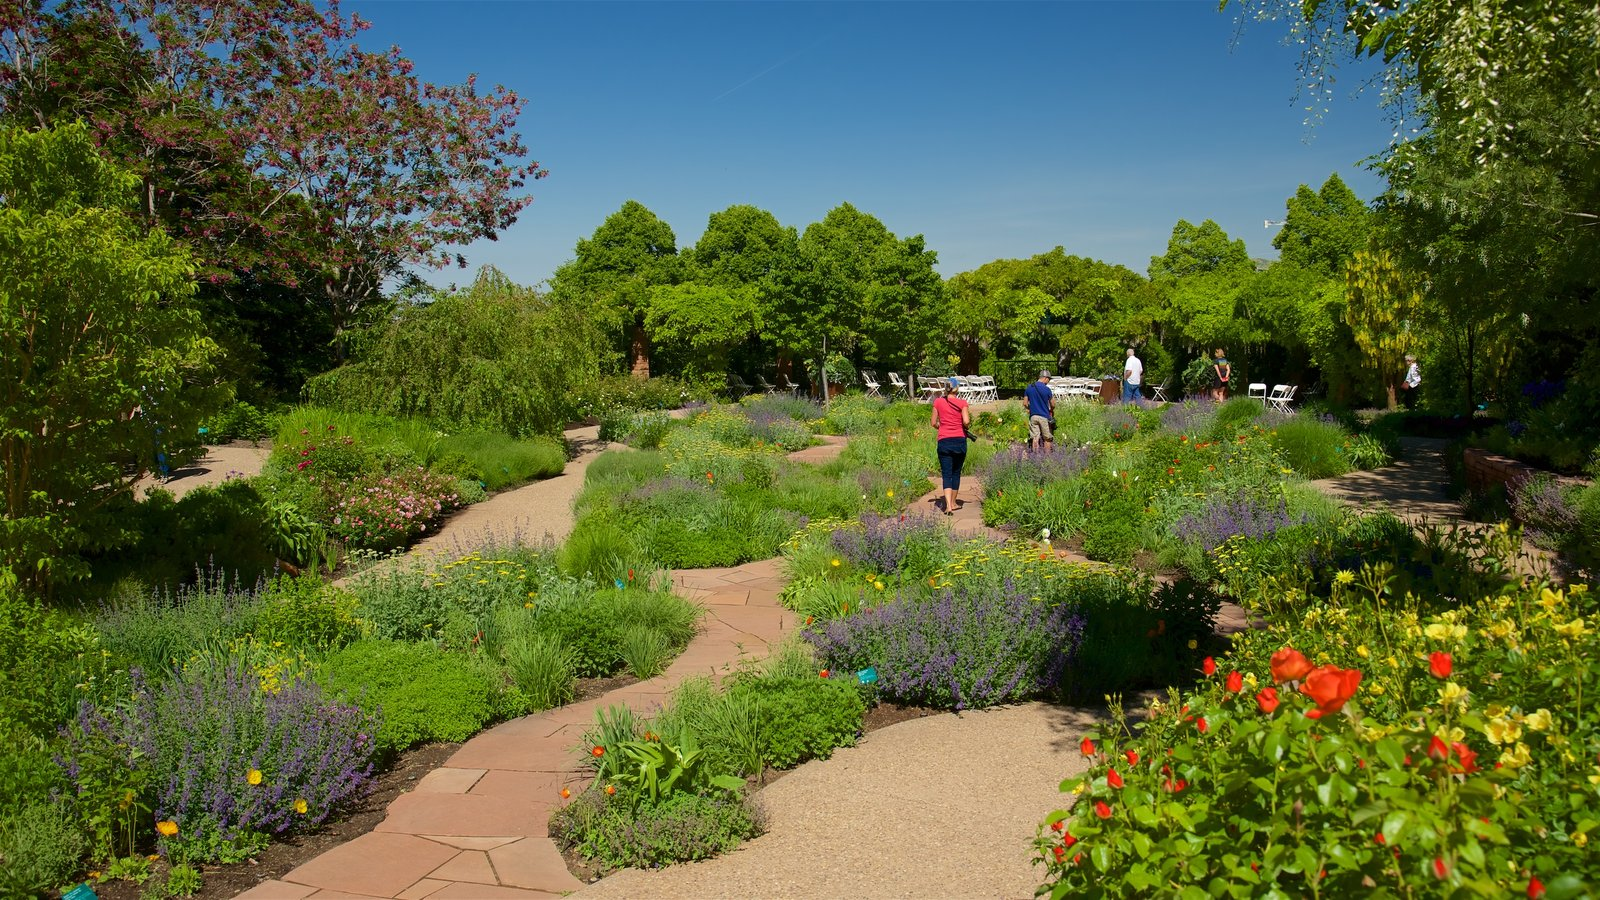 Red Butte Garden and Arboreteum featuring a garden and flowers as well as a small group of people